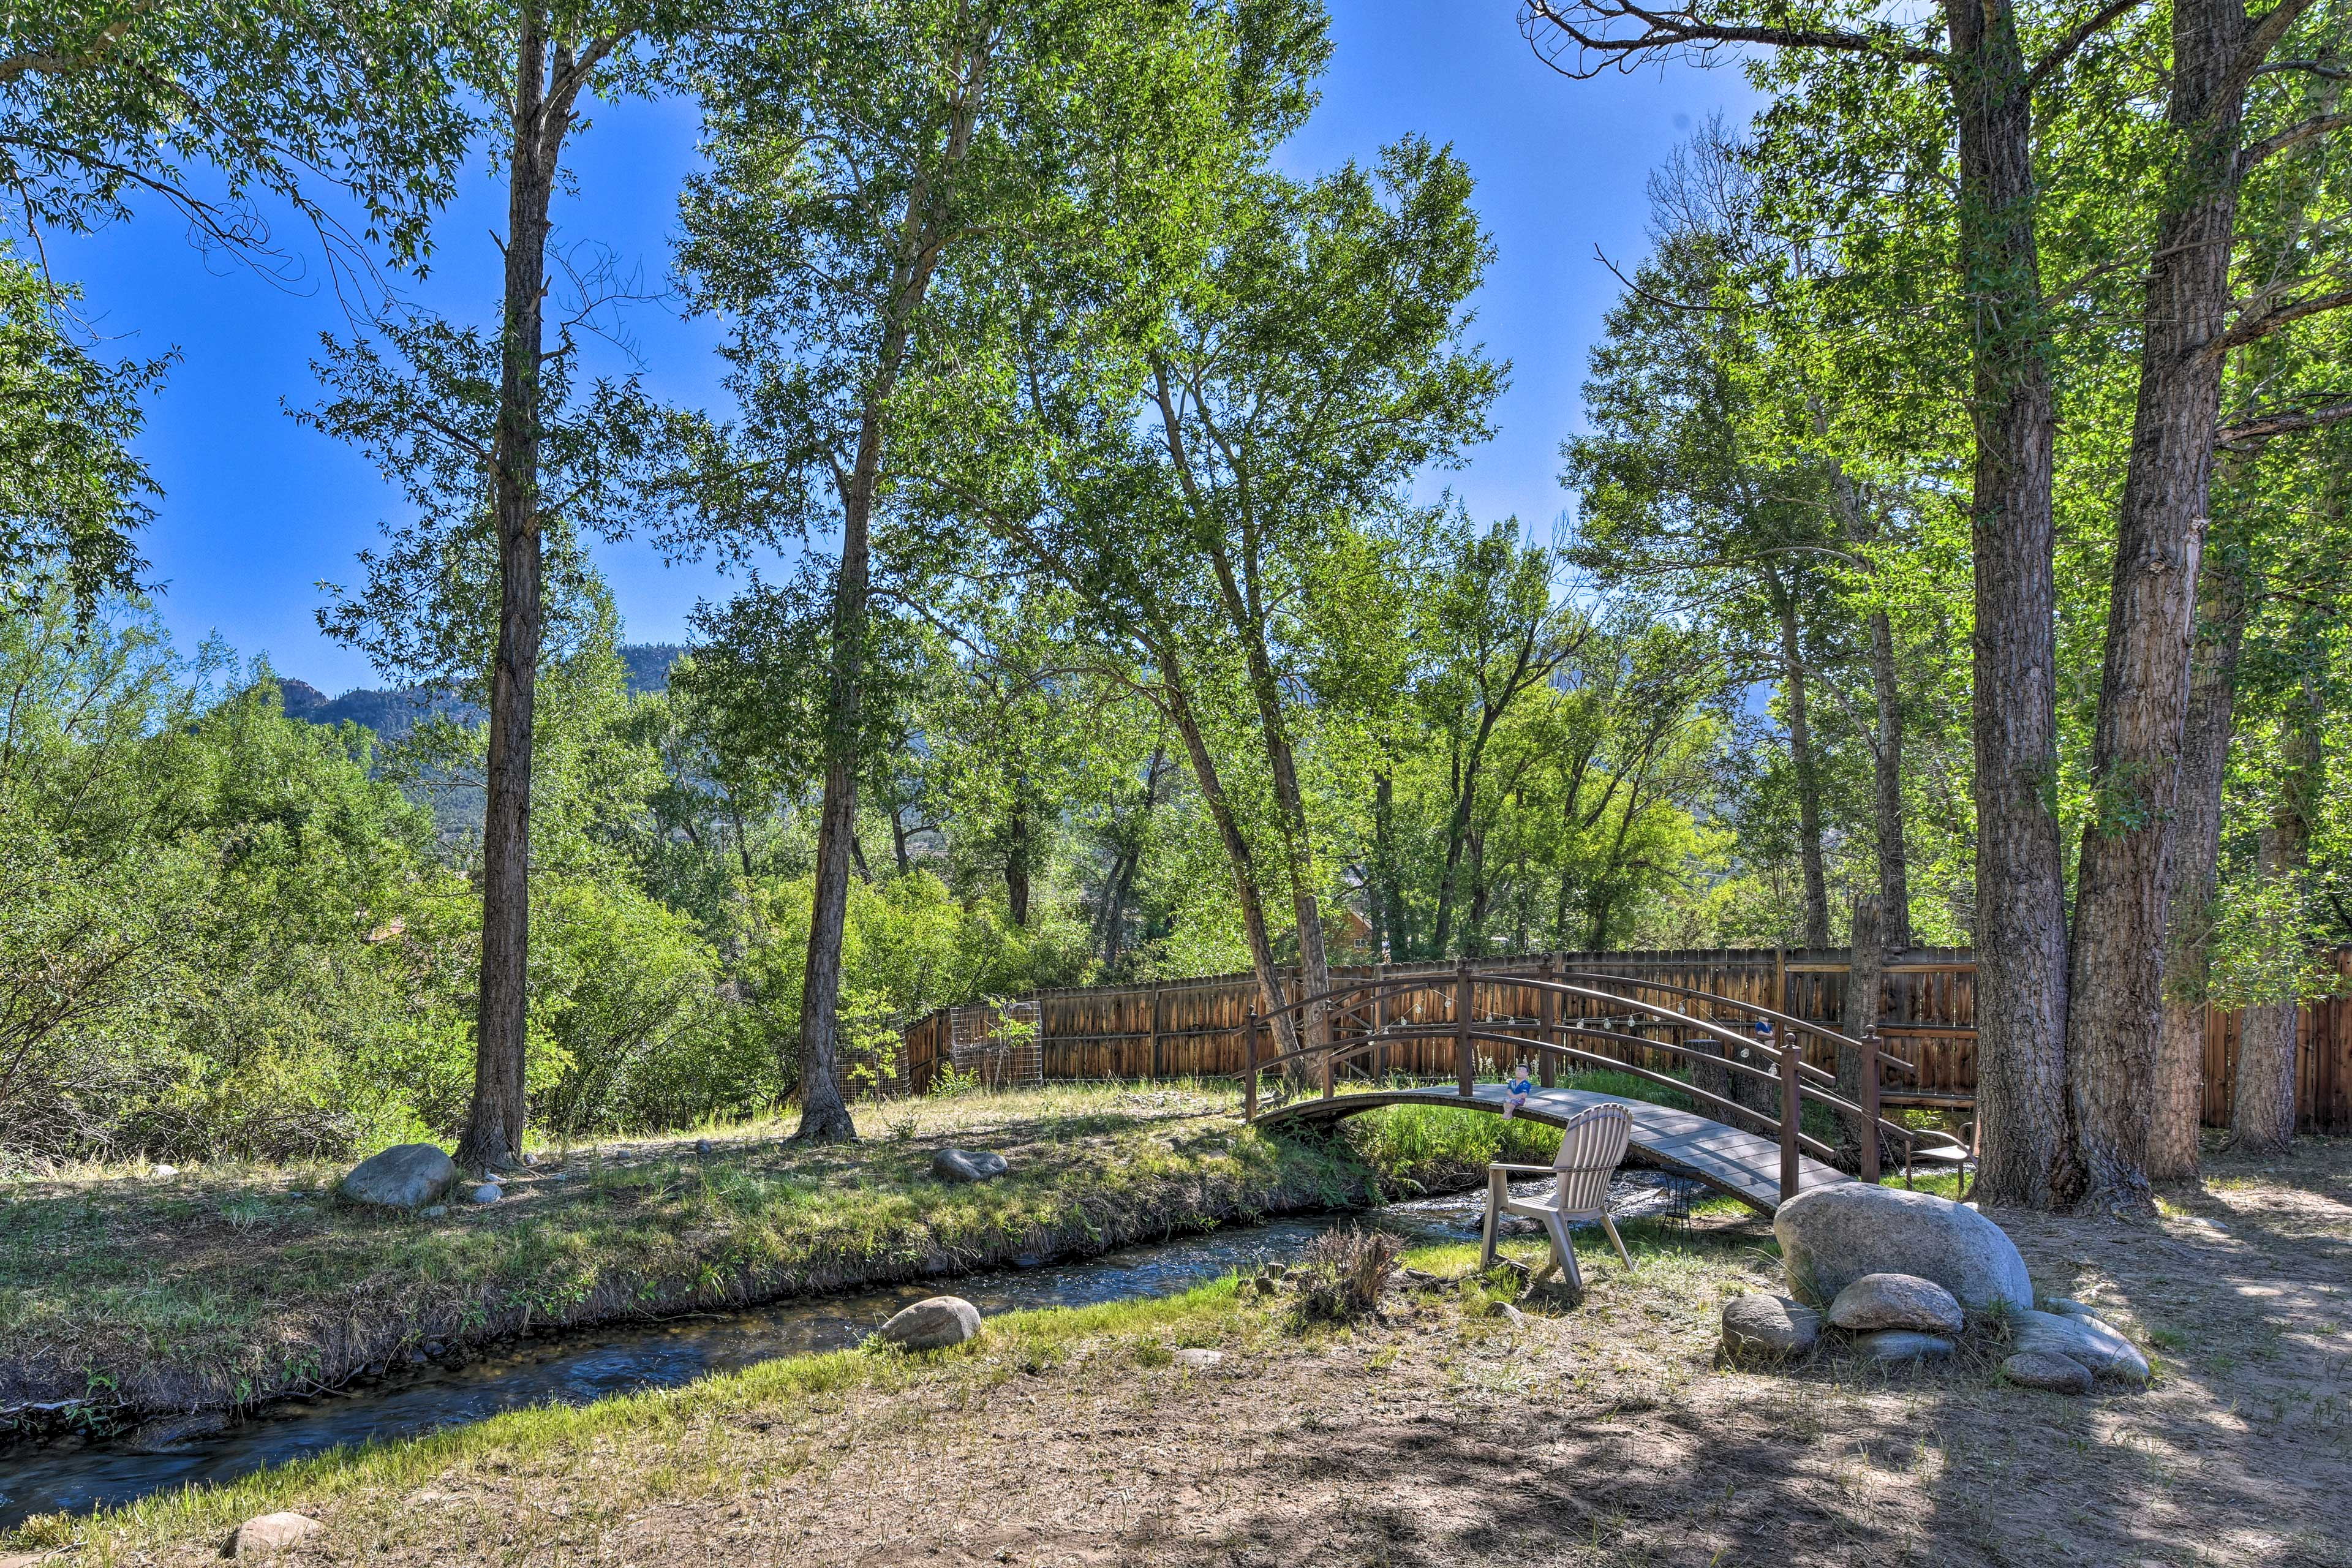 The home sits on a fenced-in yard near Cottonwood Creek with numerous trees.